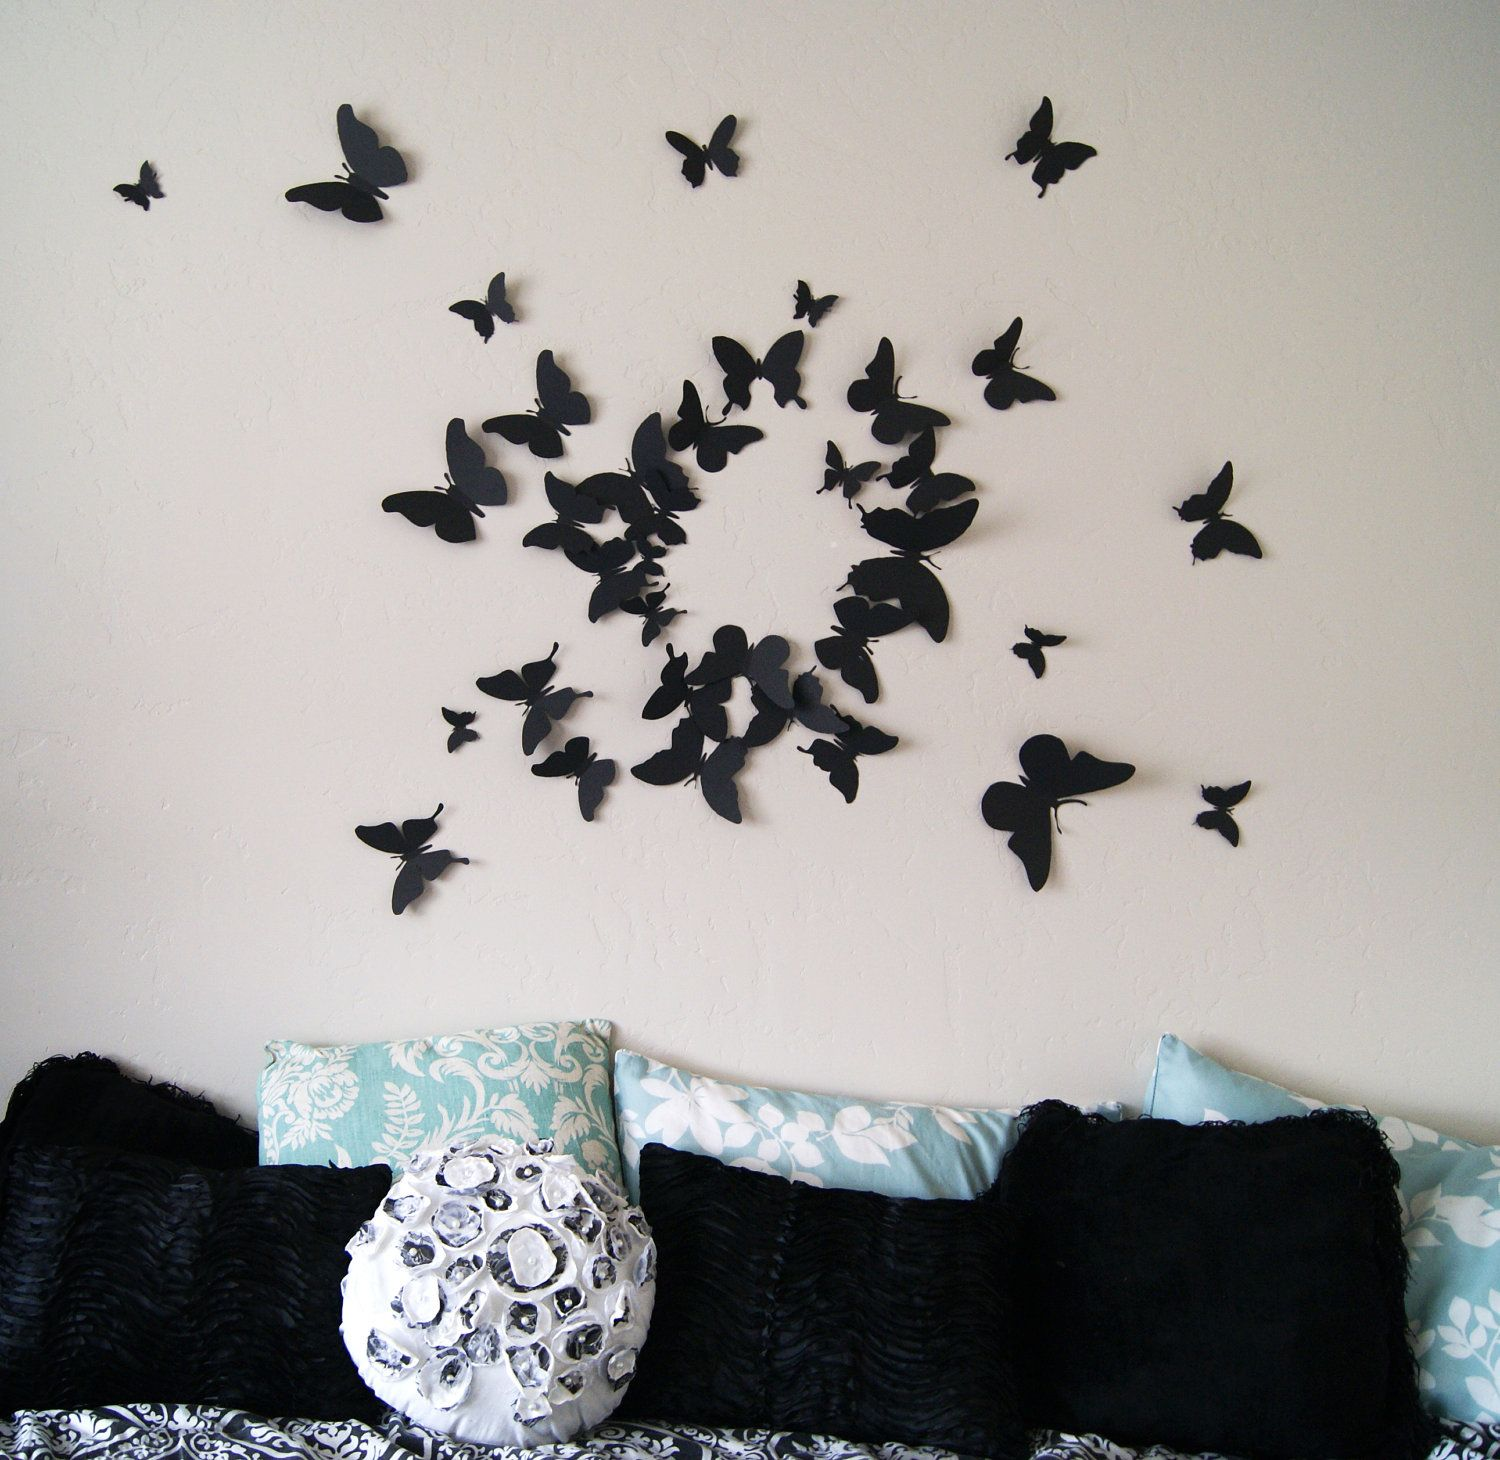 Free shipping 50 3d butterfly wall art circle burst by leeshay free shipping 50 3d butterfly wall art circle burst by leeshay 4000 amipublicfo Choice Image